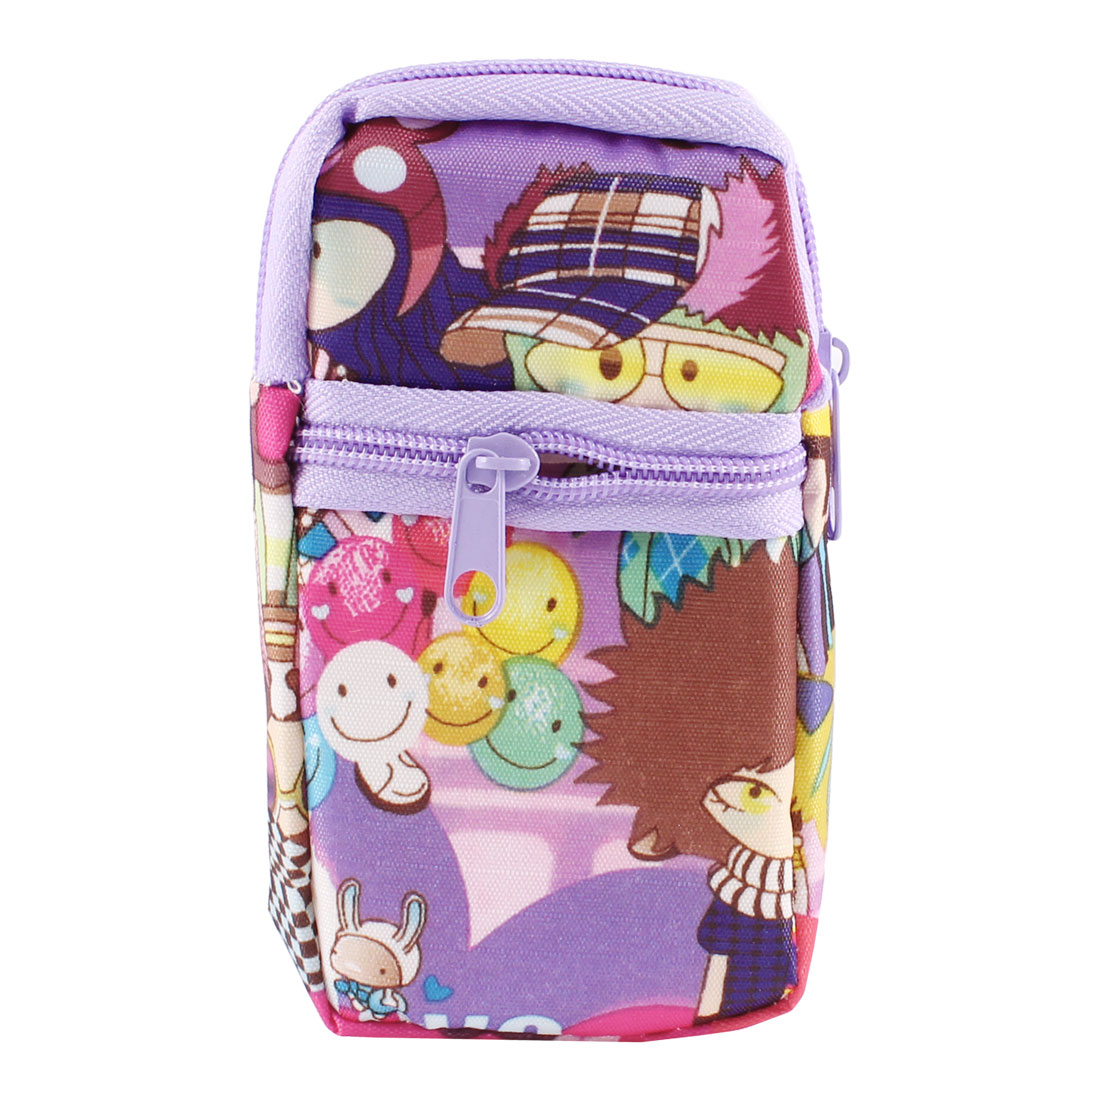 Multicolor Cartoon Printed Dual Compartments MP4 MP3 Phone Wrist Bag Holder